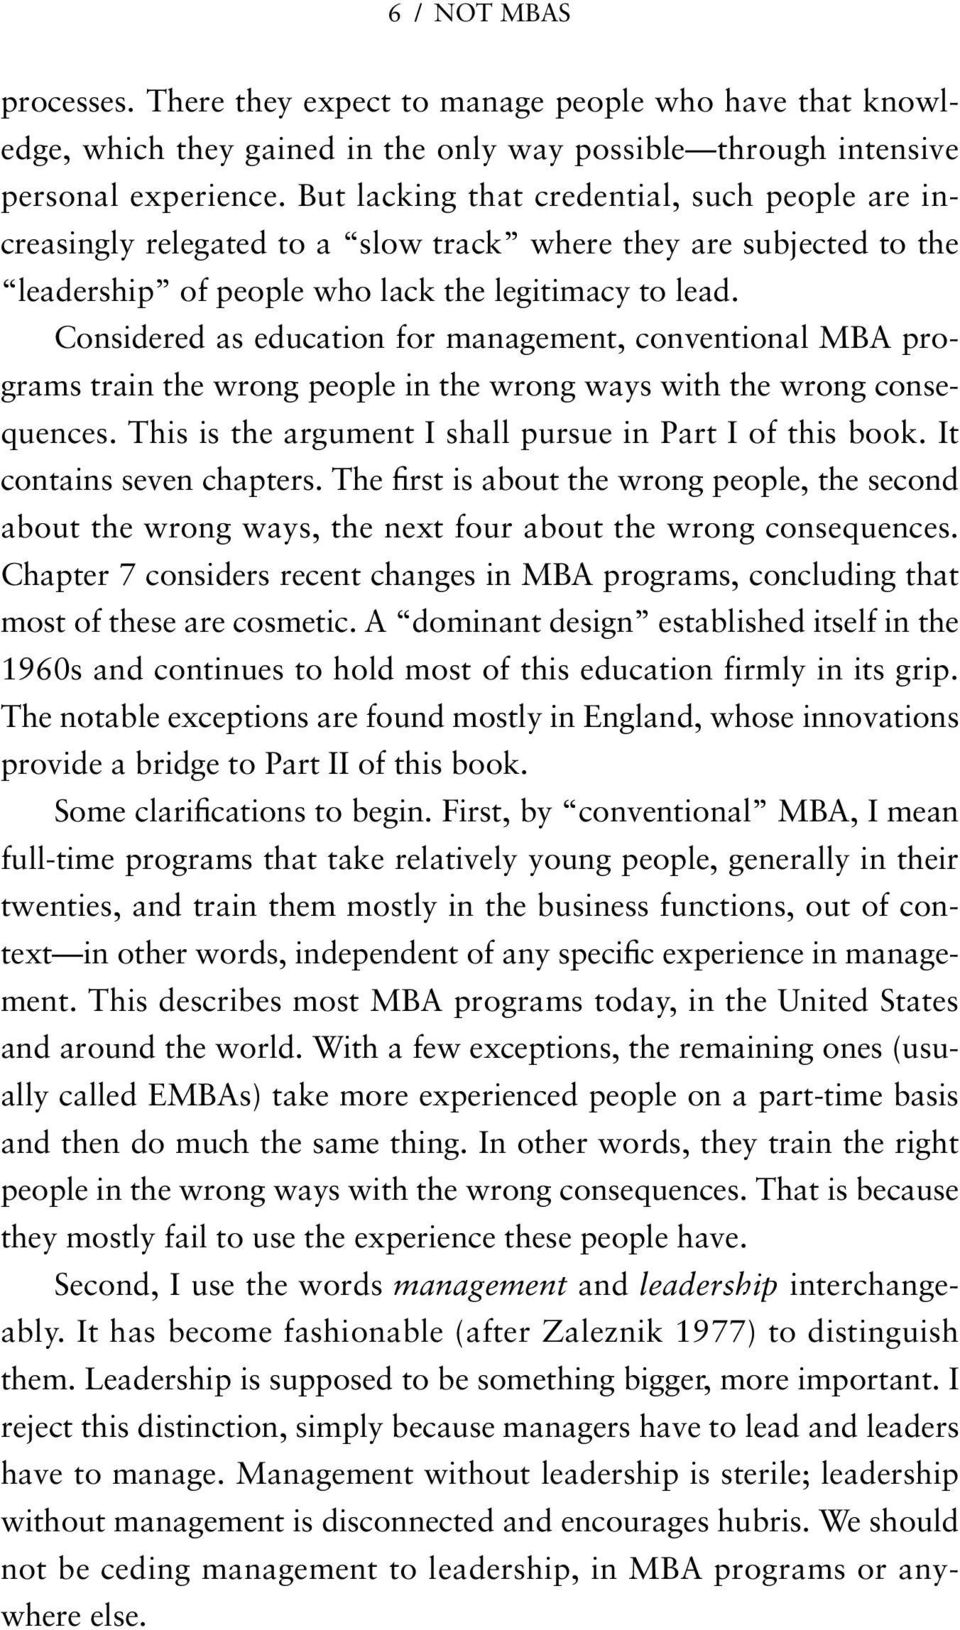 Considered as education for management, conventional MBA programs train the wrong people in the wrong ways with the wrong consequences. This is the argument I shall pursue in Part I of this book.